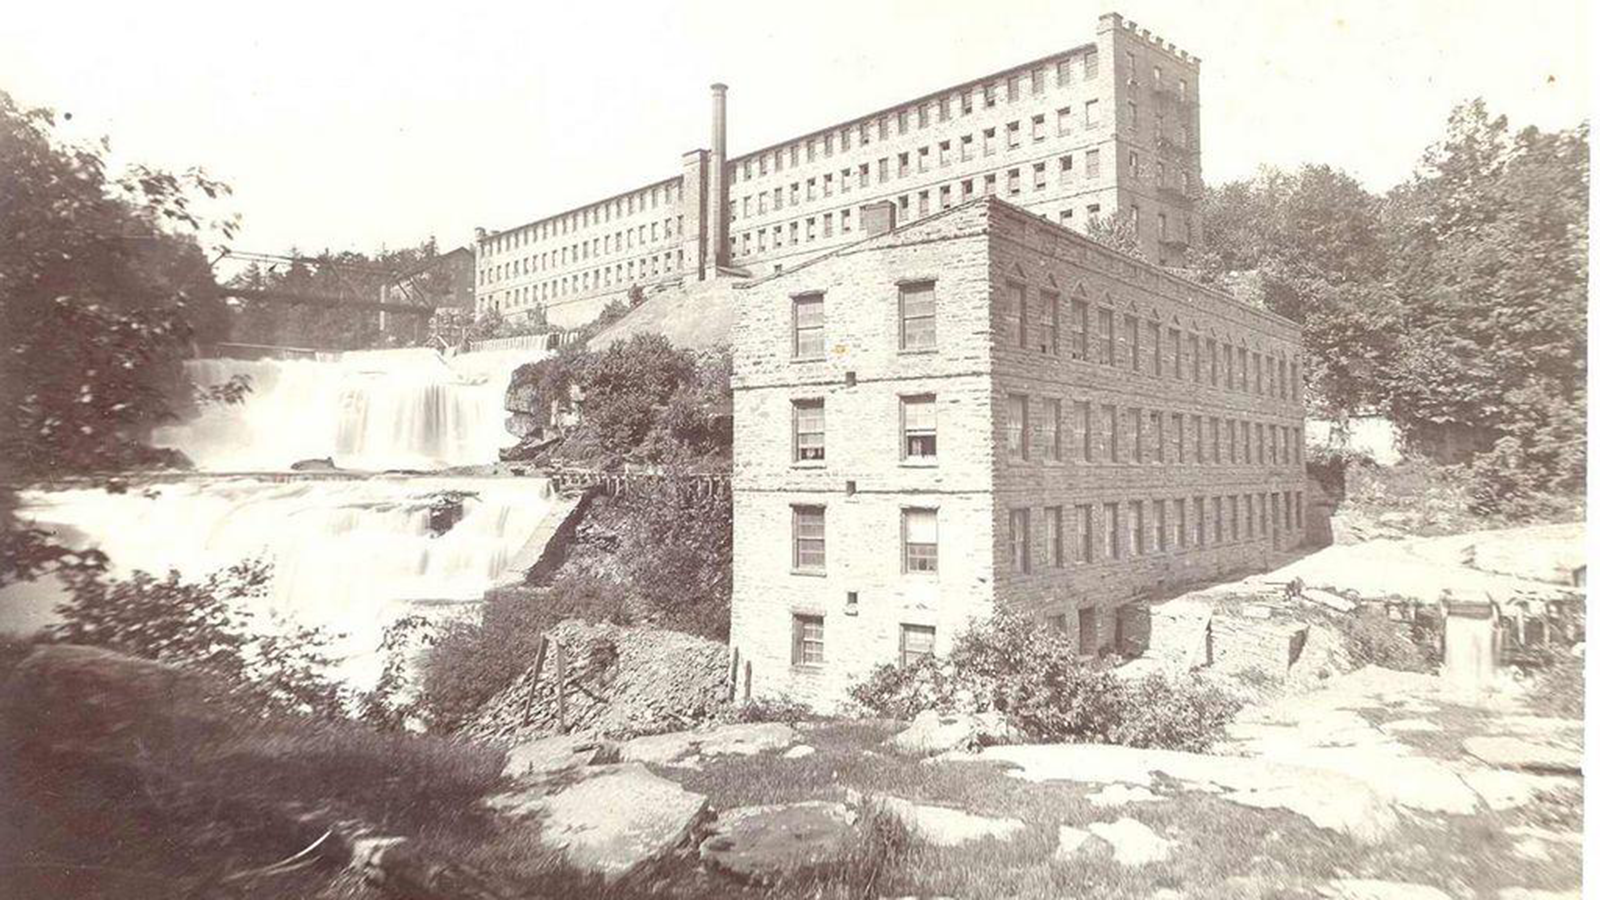 Image of Historic Exterior, Ledges Hotel in Hawley, Pennsylvania, 1890, Member of Historic Hotels of America, History